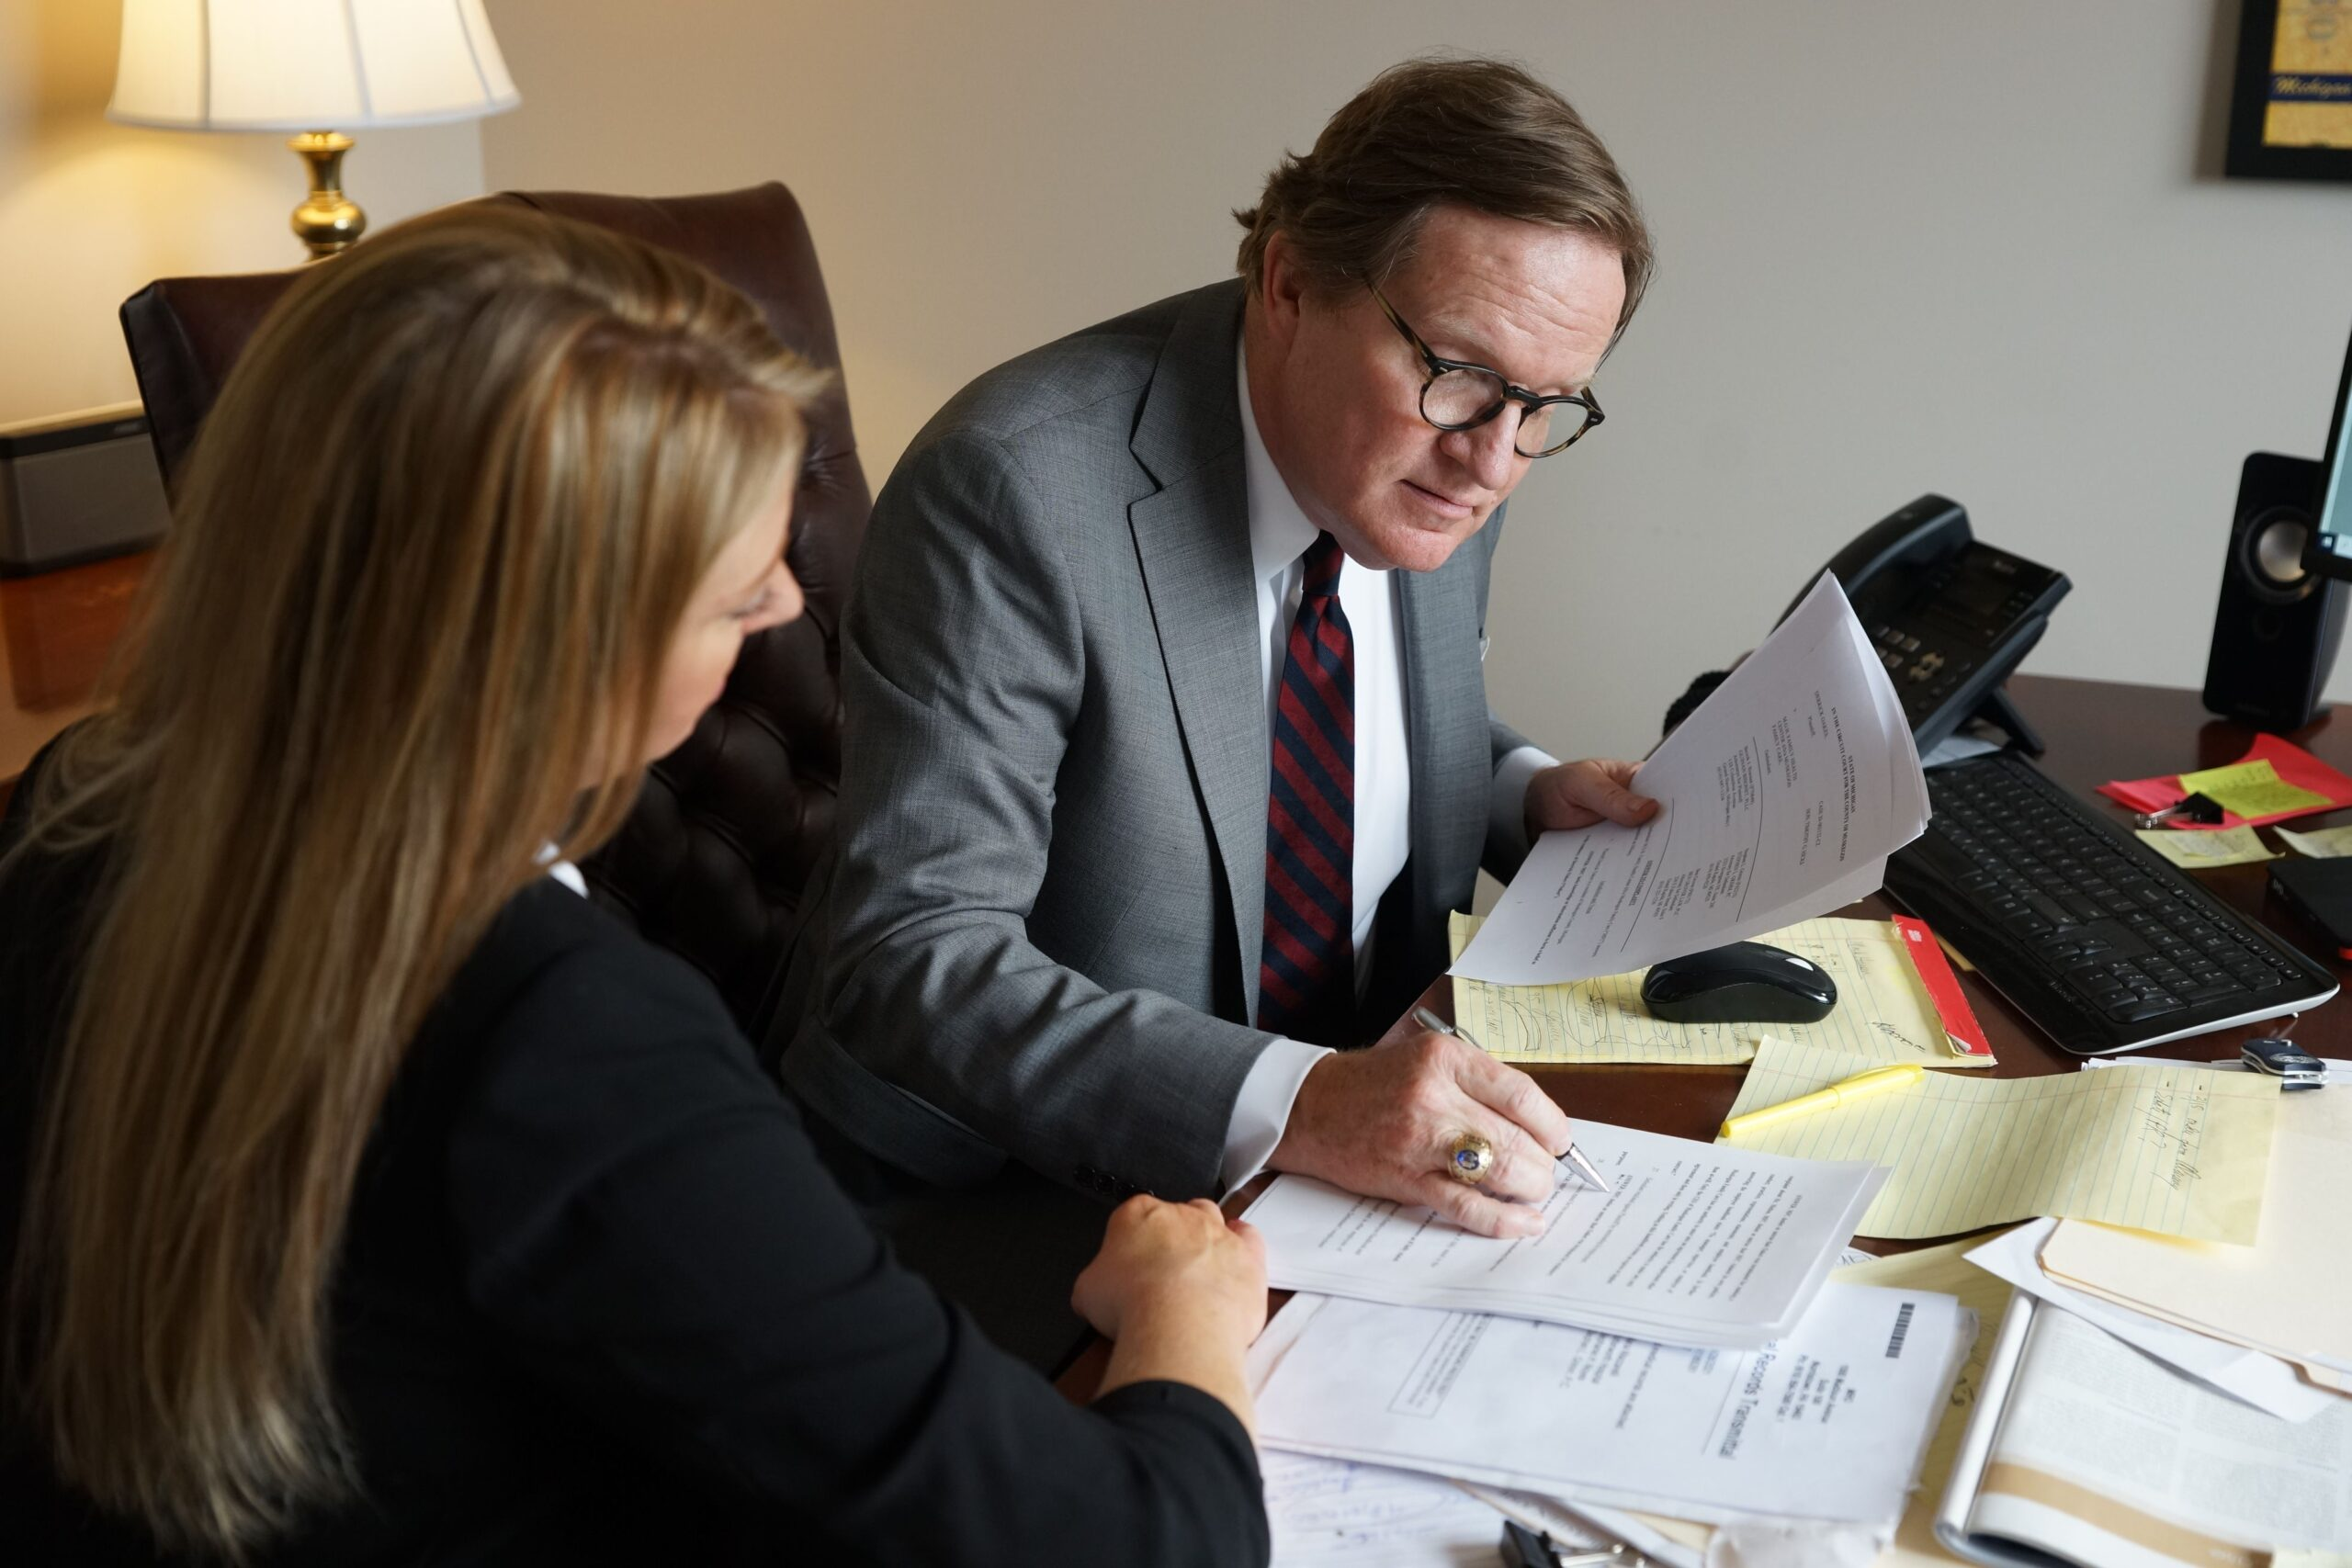 Legal Malpractice | Grand Rapids Legal Malpractice Attorney | Lawyers in Grand Rapids, MI